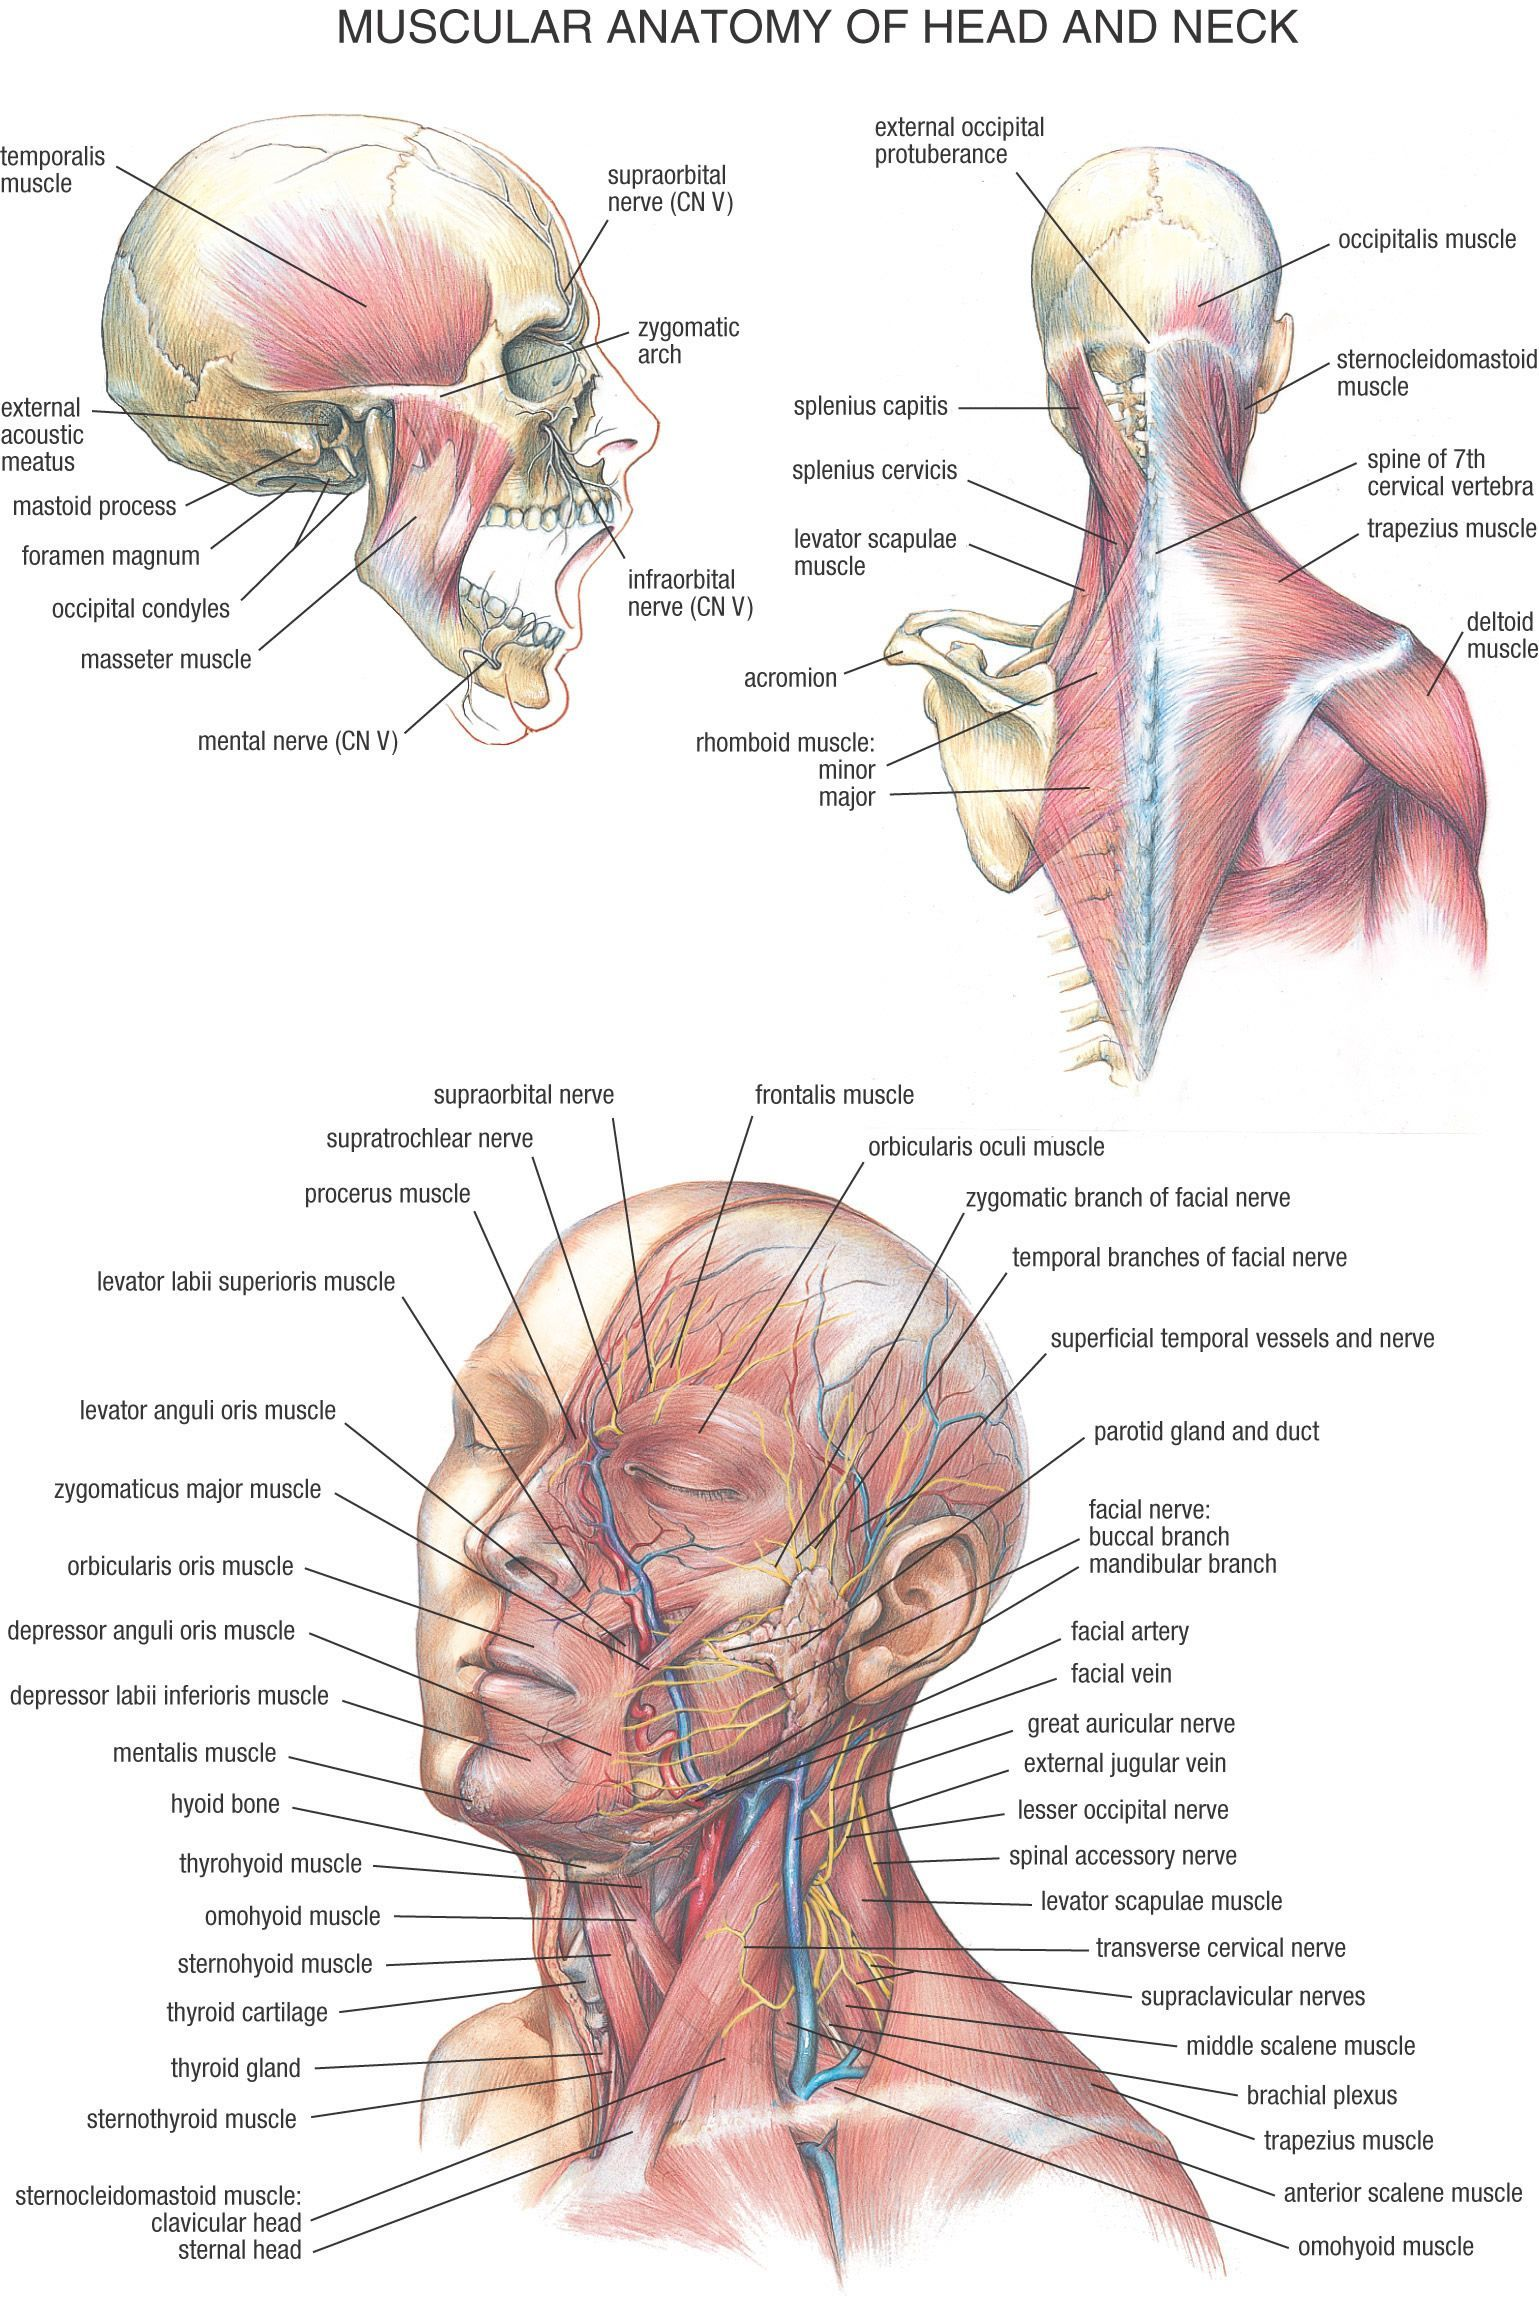 Human Neck Anatomy   Human Neck Anatomy Human Neck Anatomy